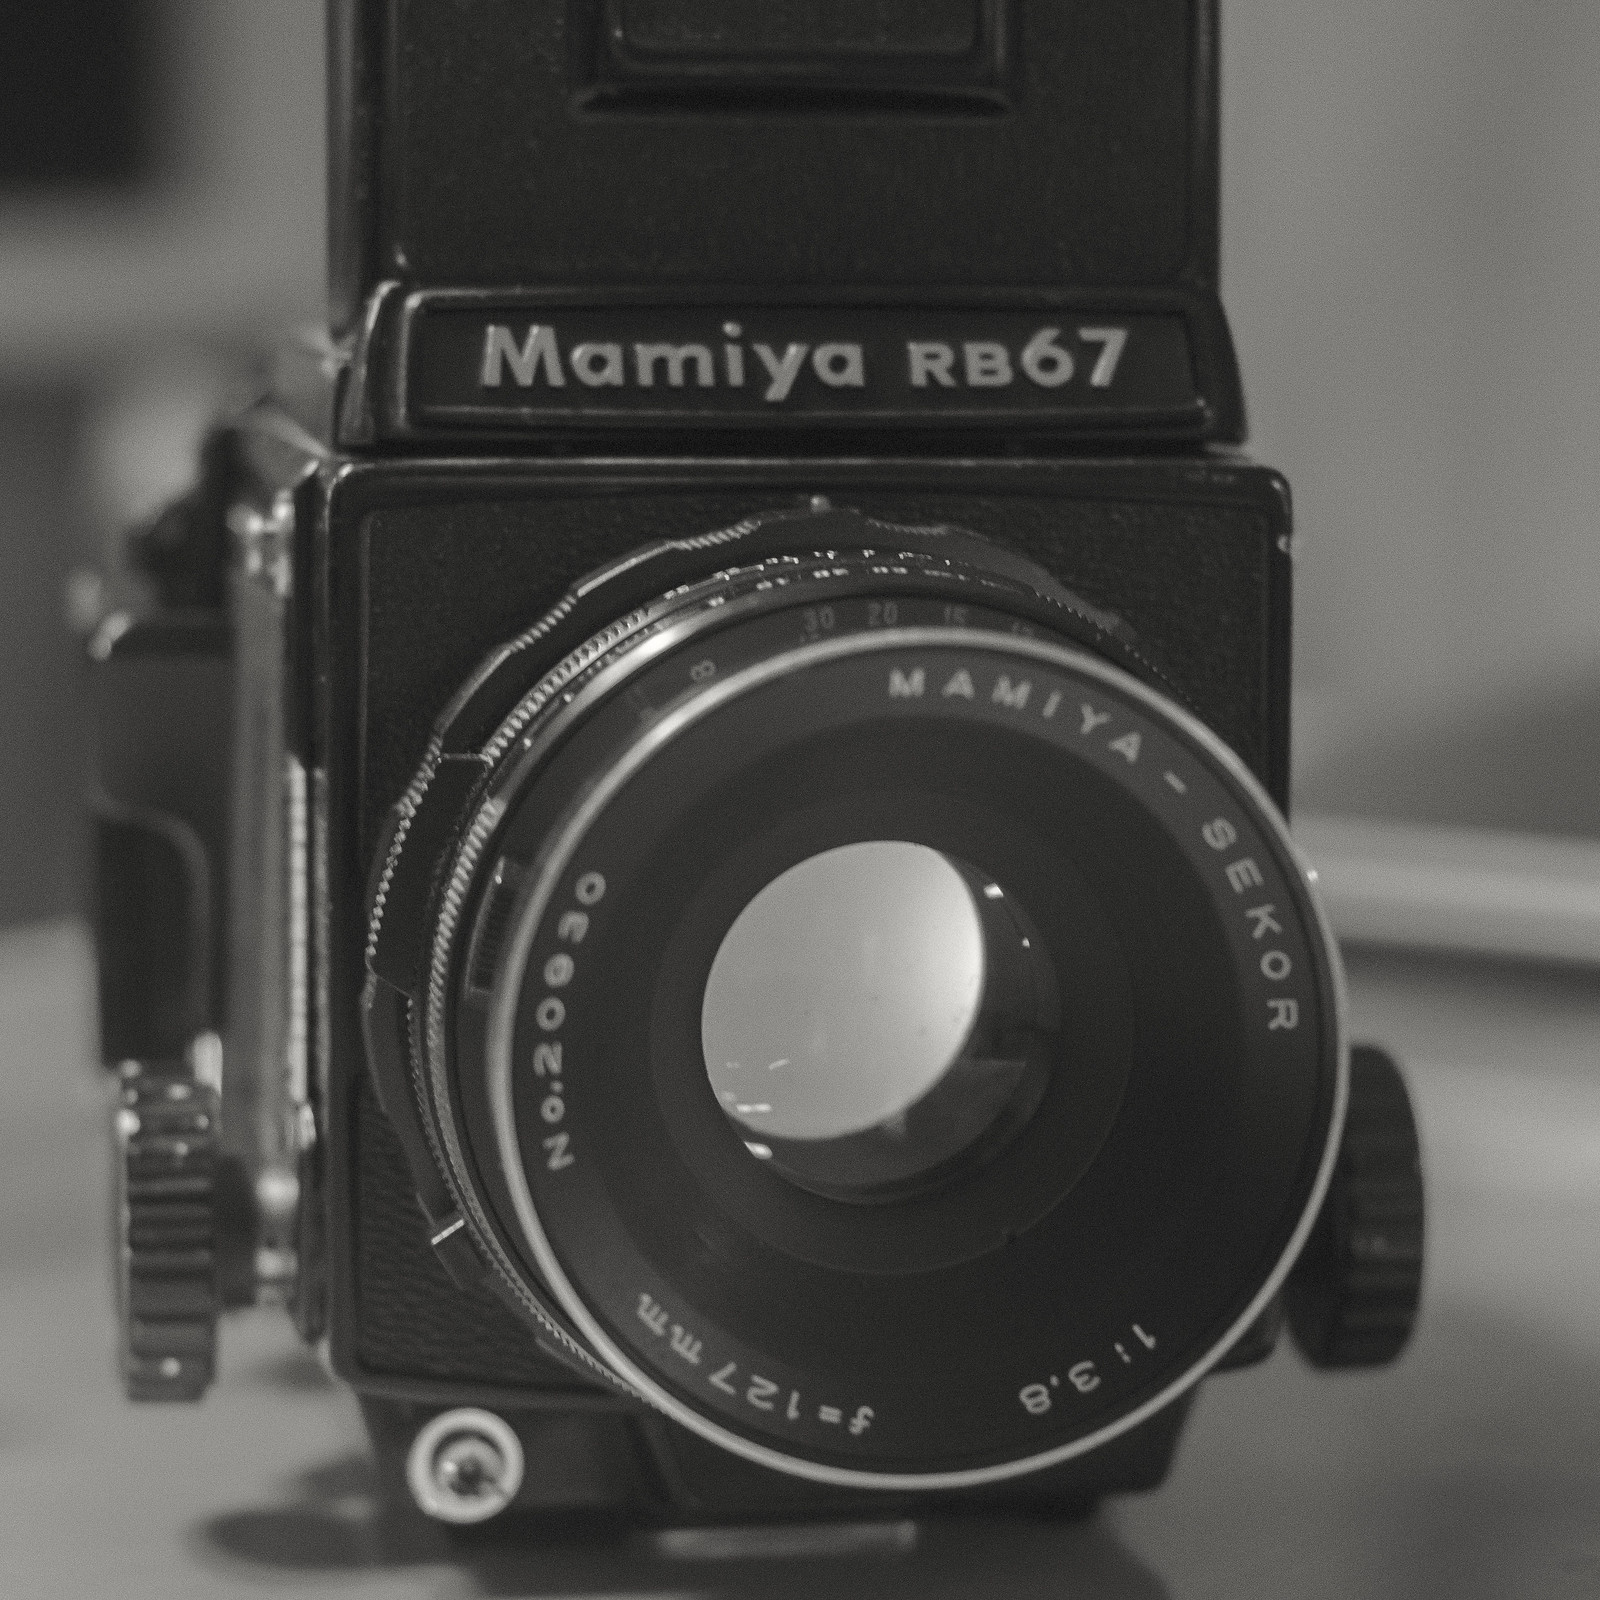 Camera Review Blog No. 40 - Mamiya RB67